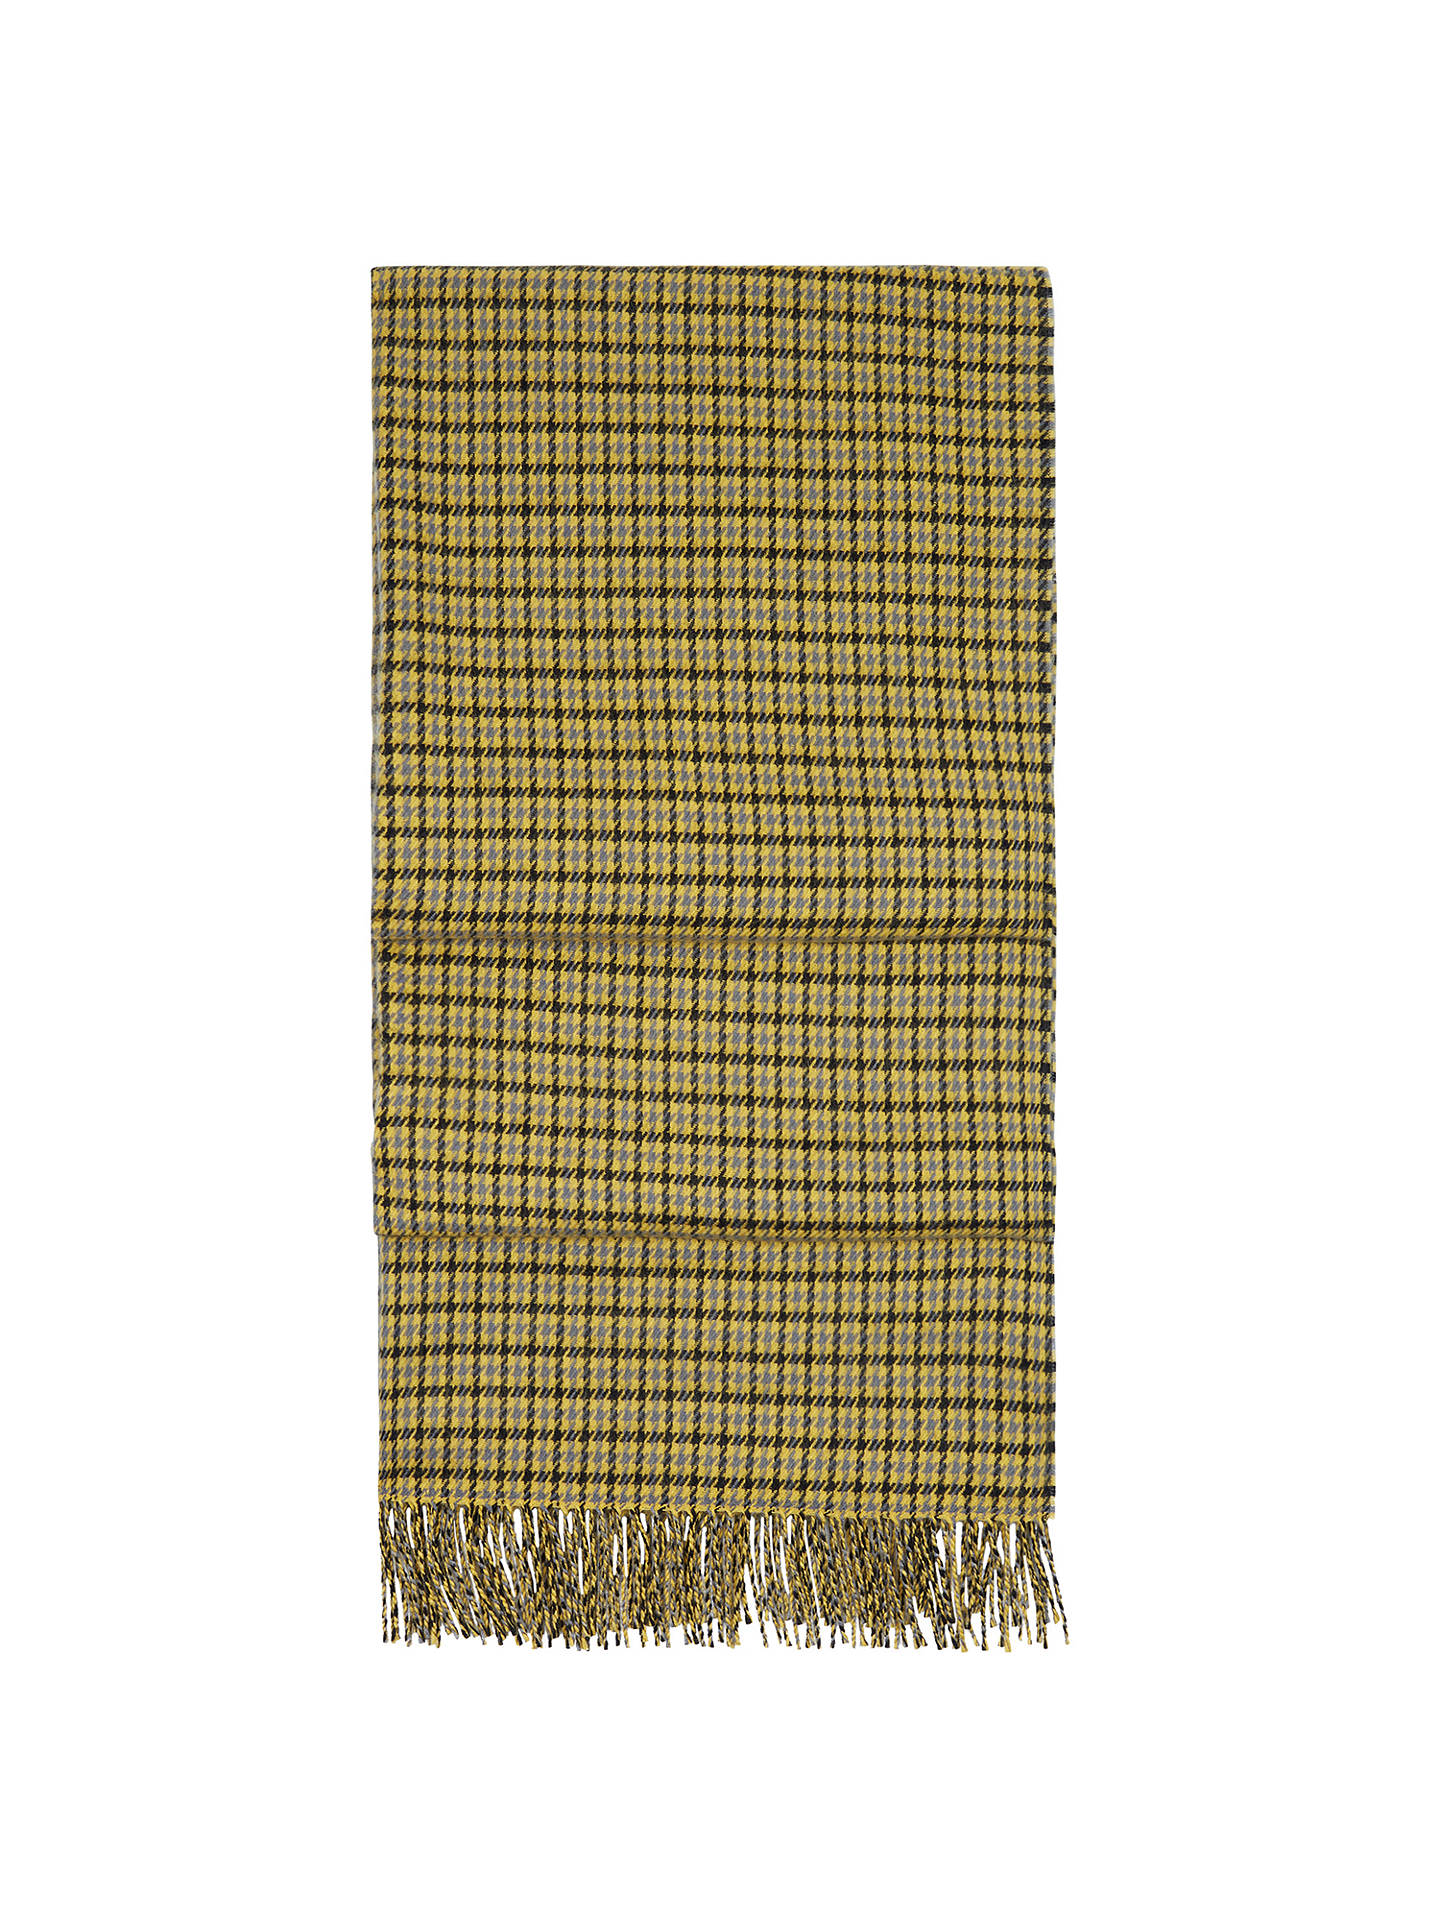 a65d739f5 Buy Hobbs Bryony Check Scarf, Yellow/Navy Online at johnlewis.com